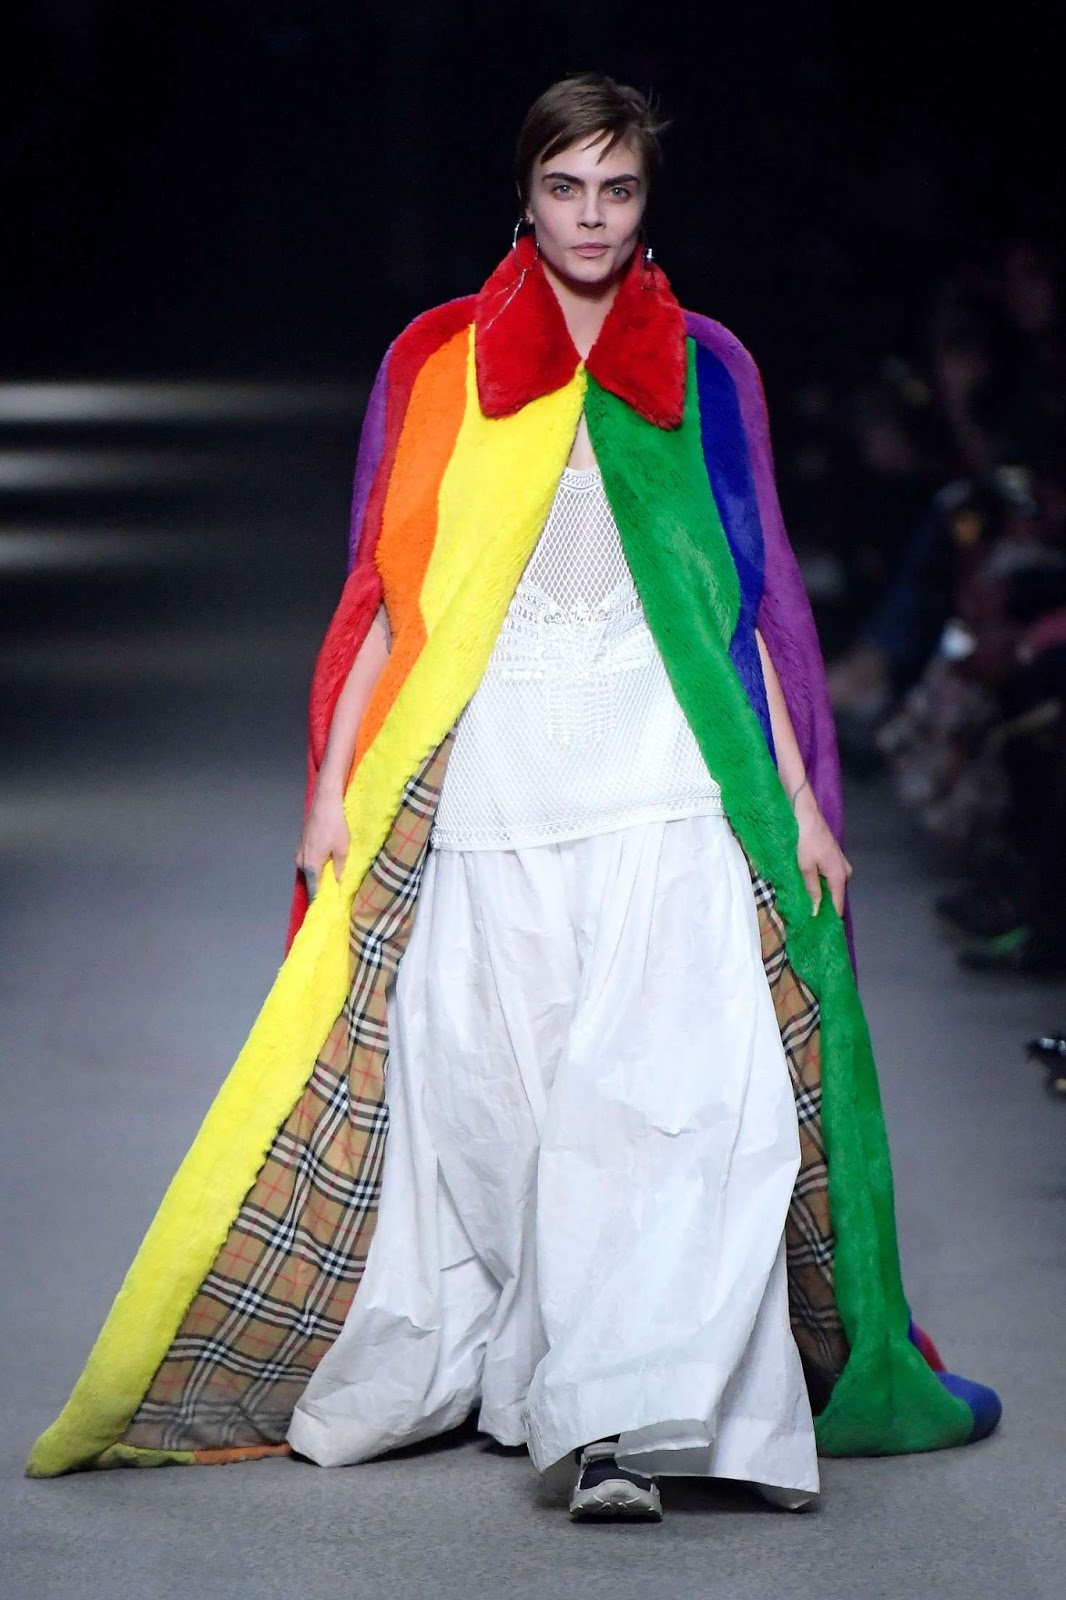 cara_delevigne_chav_burberry_2018_fashion_90s_rainbow_coat